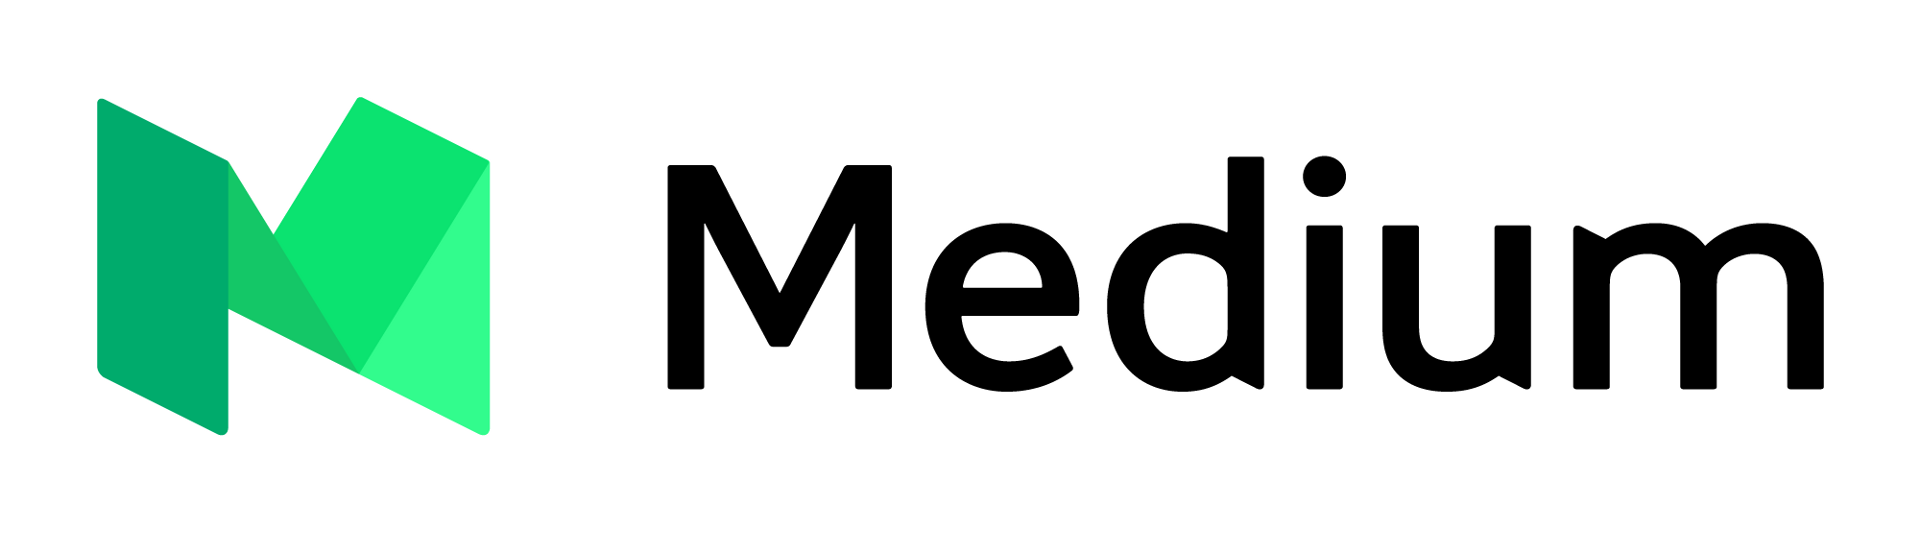 Medium, Vangst latest addition to Lerer Hippeau